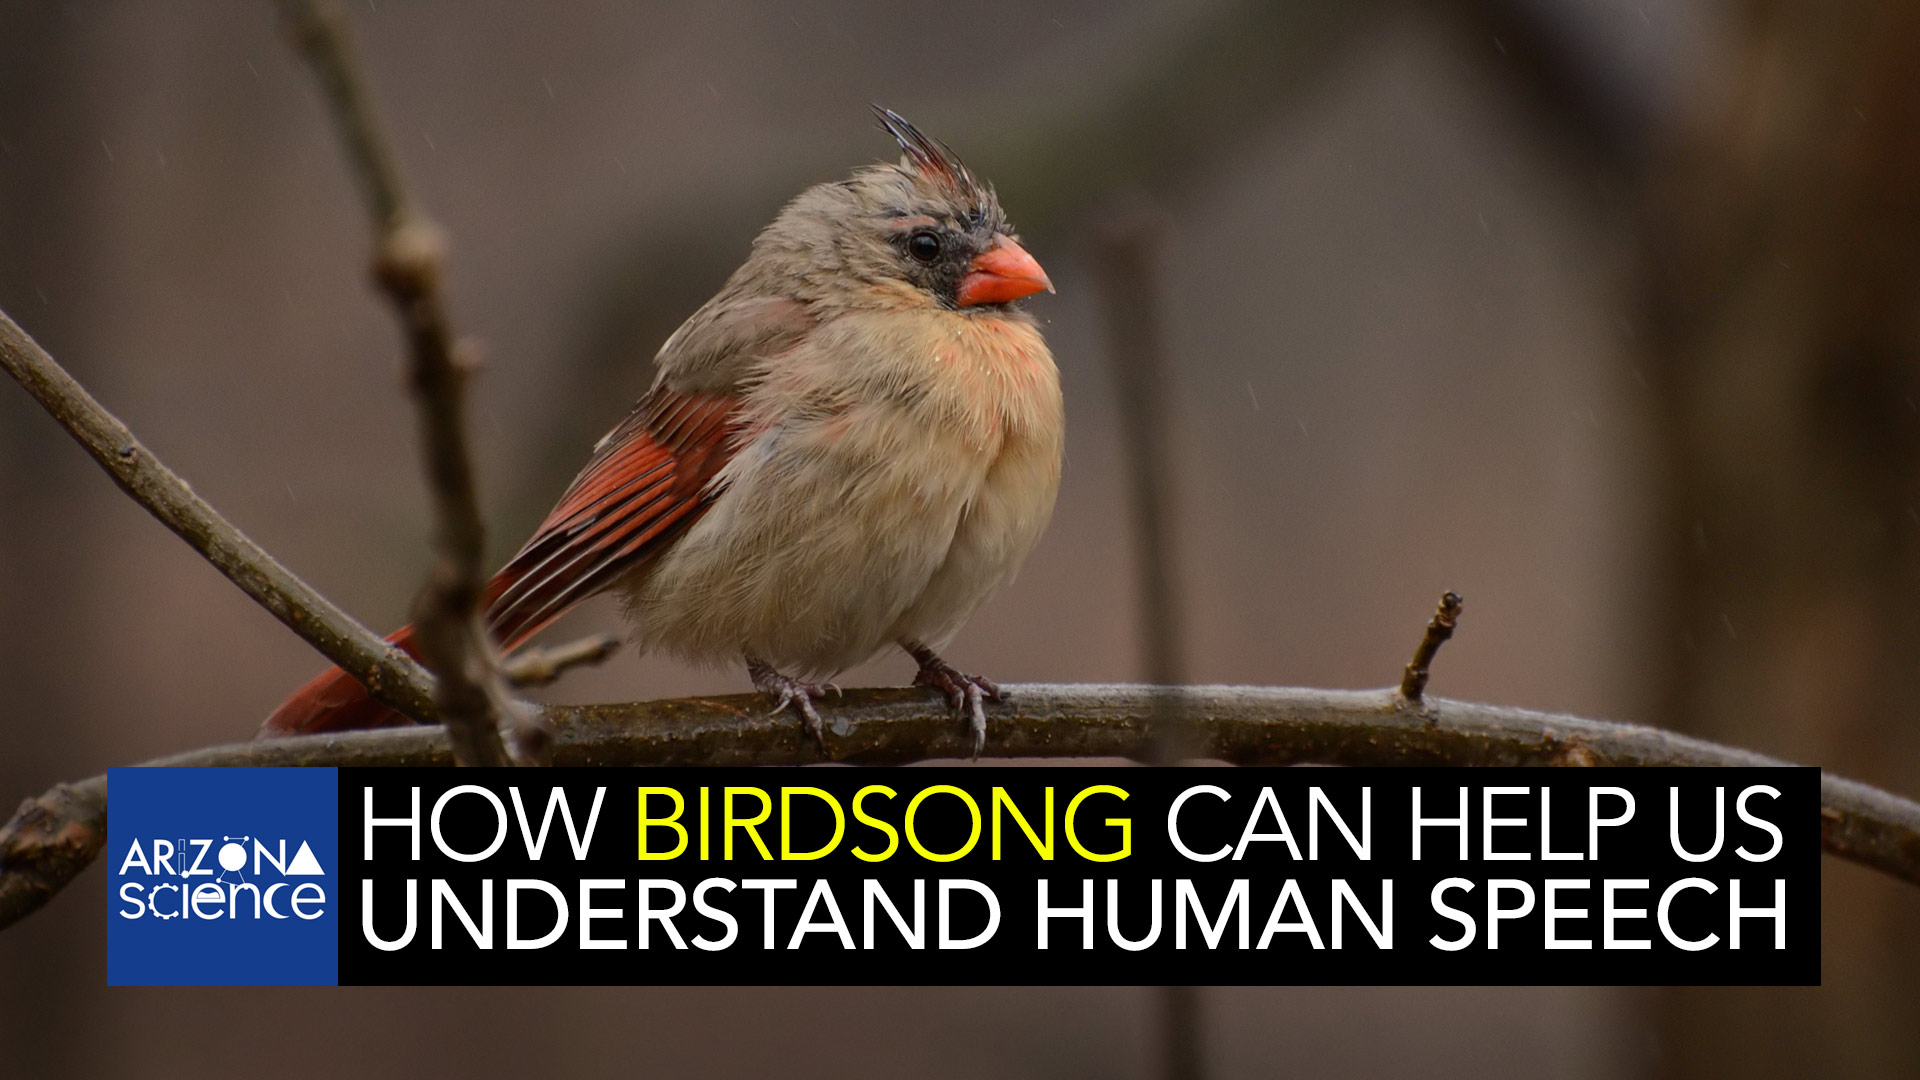 UA researchers believe studying bird vocalizations can lead to new treatments for human speech.